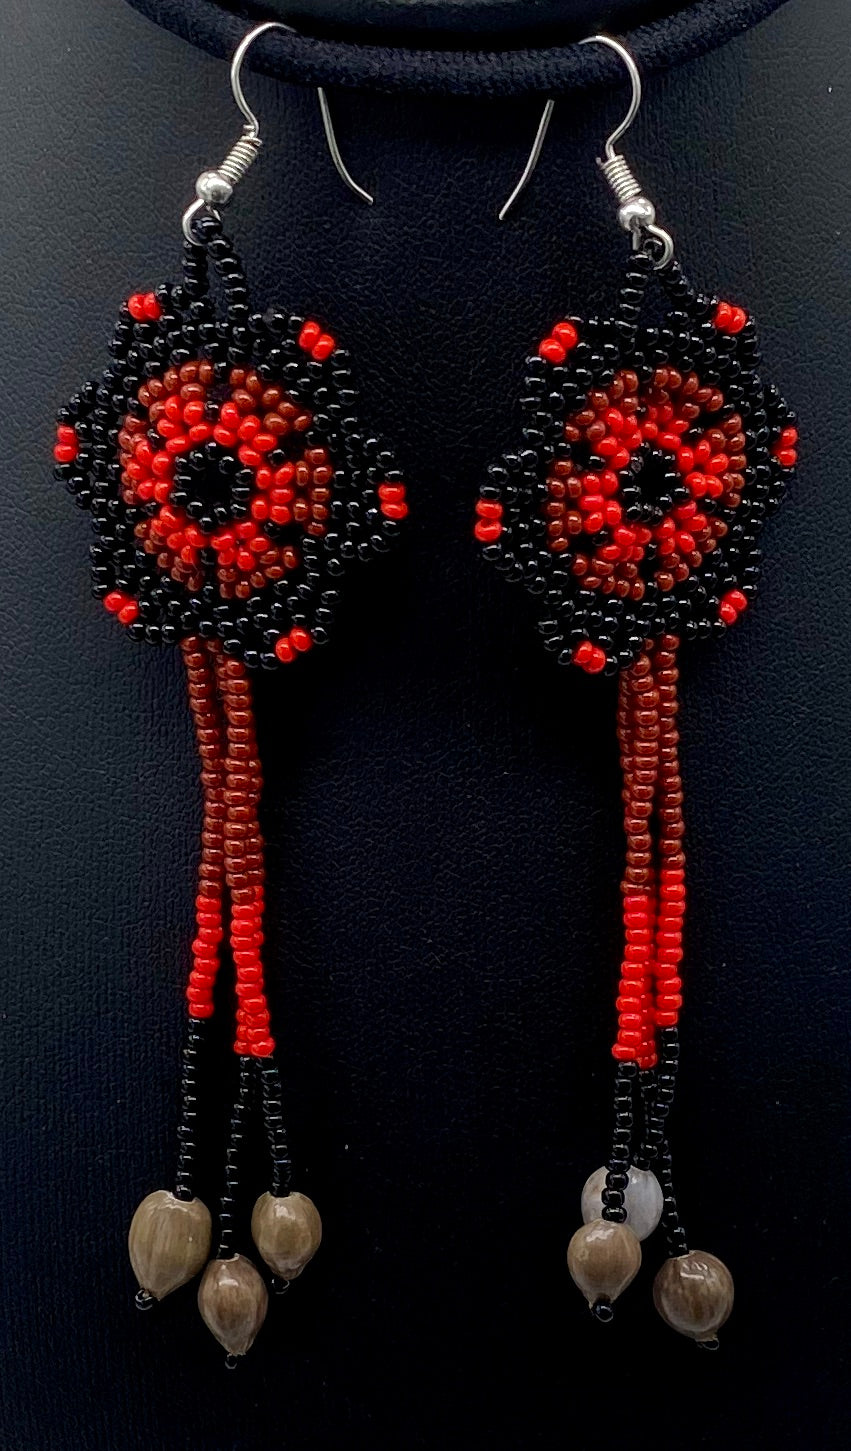 red and black with native beads at ends